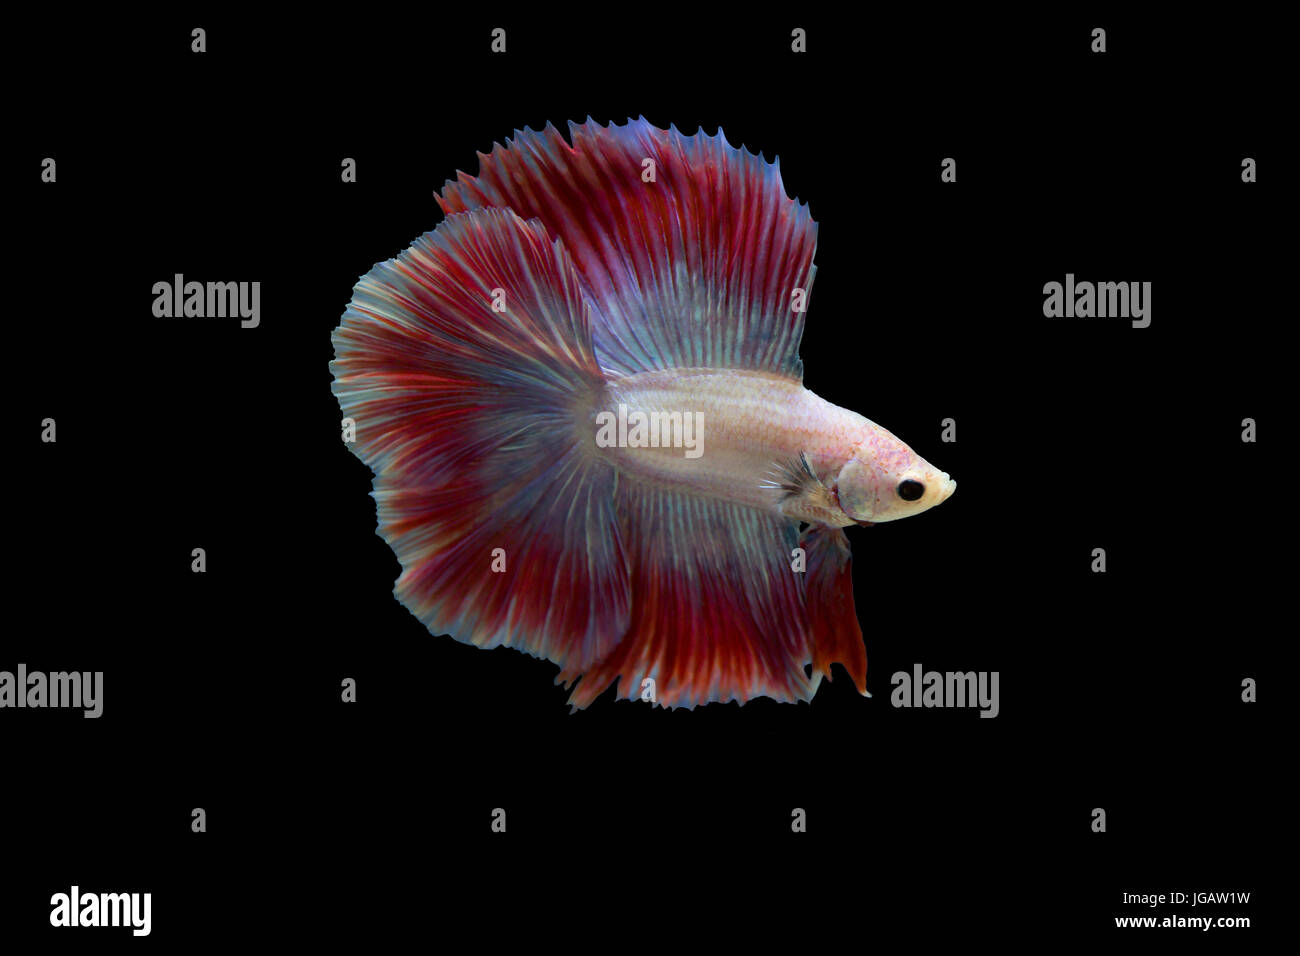 Siamese fighting fish in black background - Stock Image